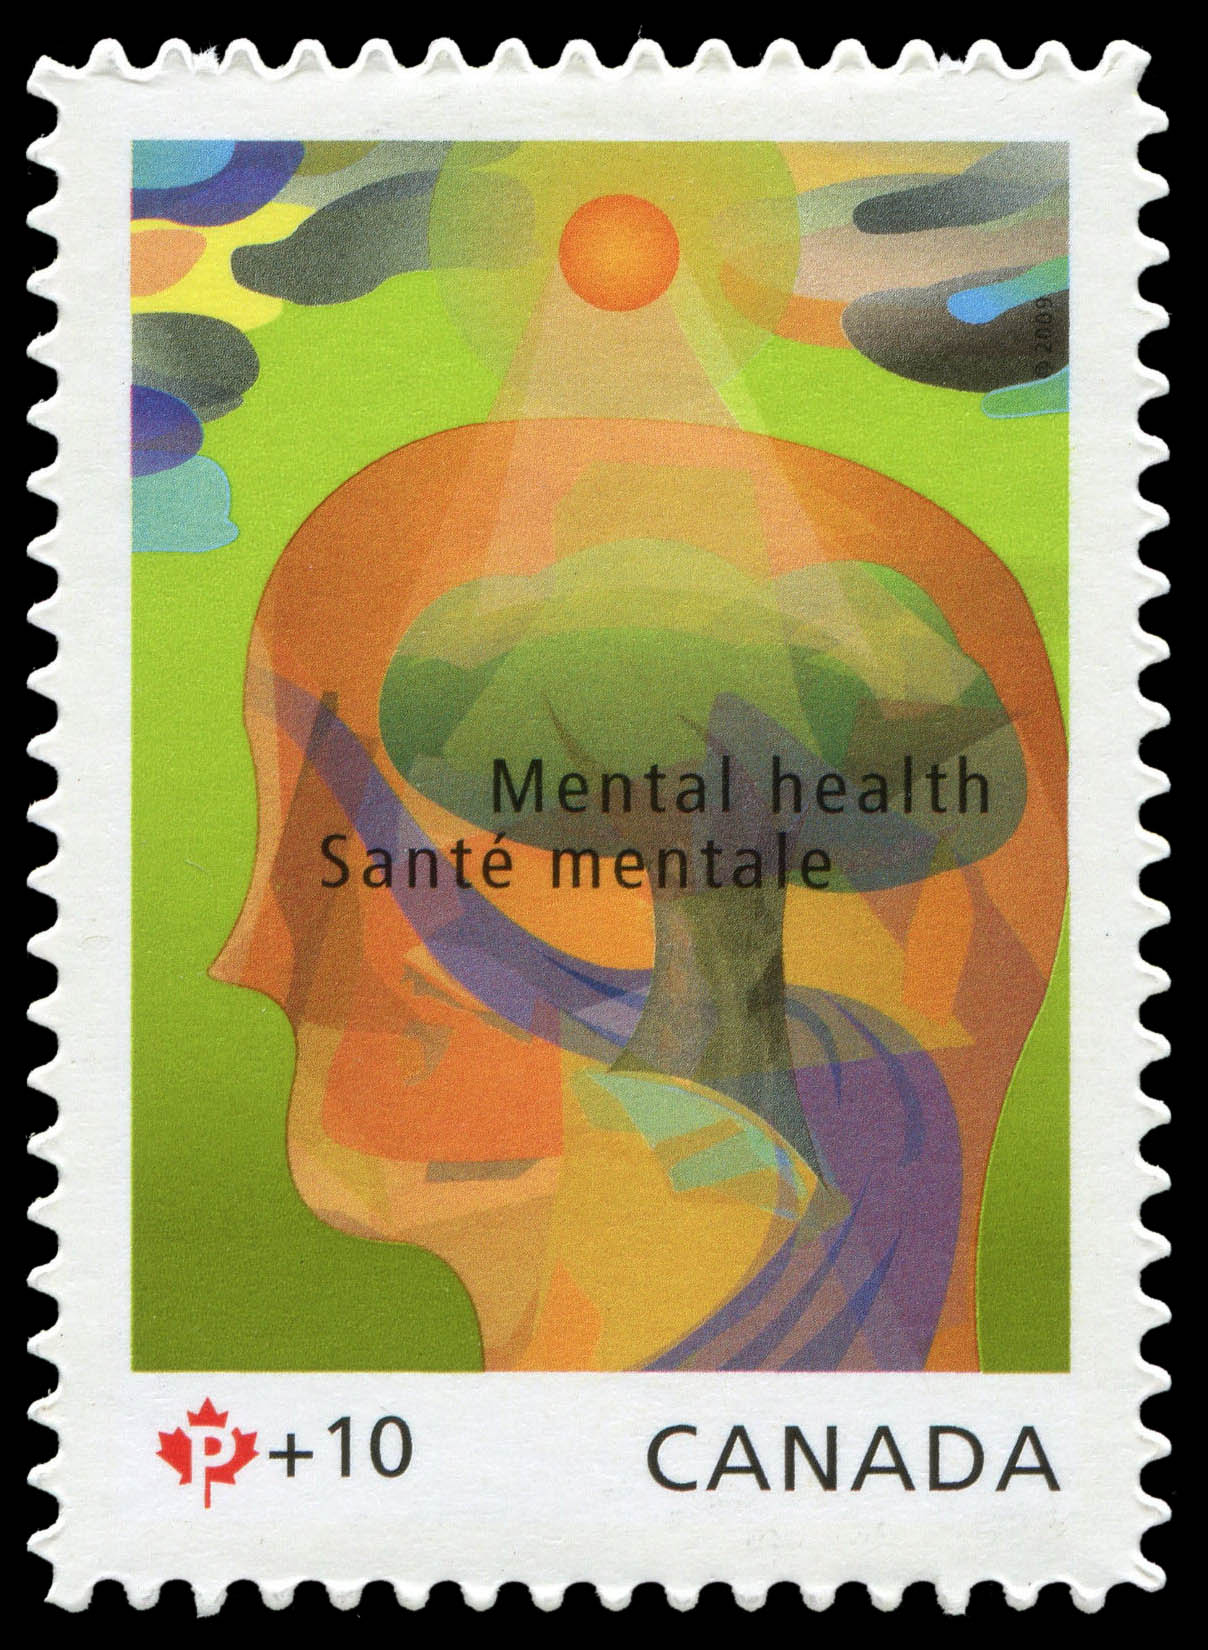 Mental Health Canada Postage Stamp